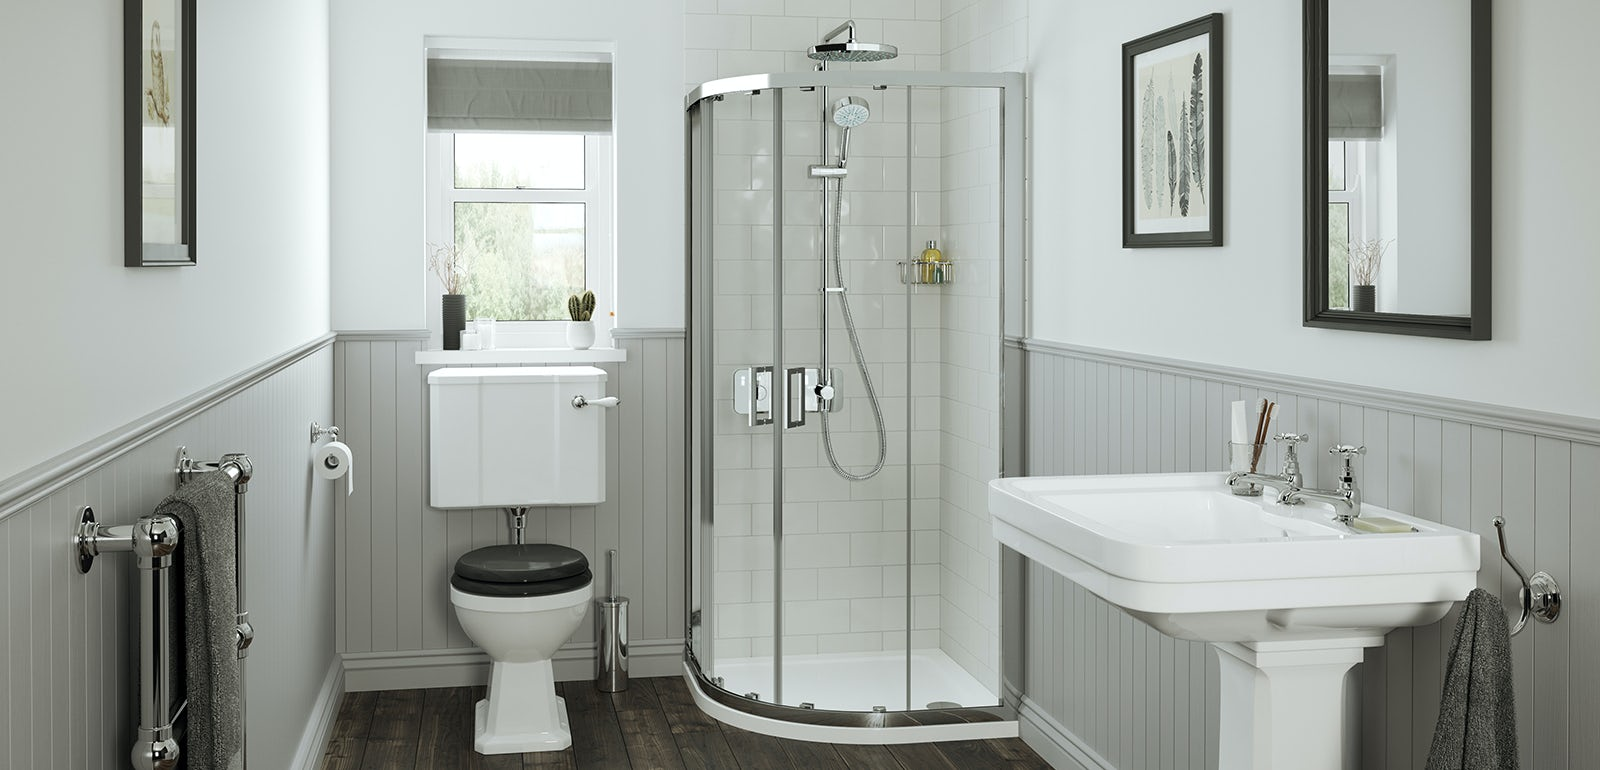 Small bathroom solutions from Mira Showers